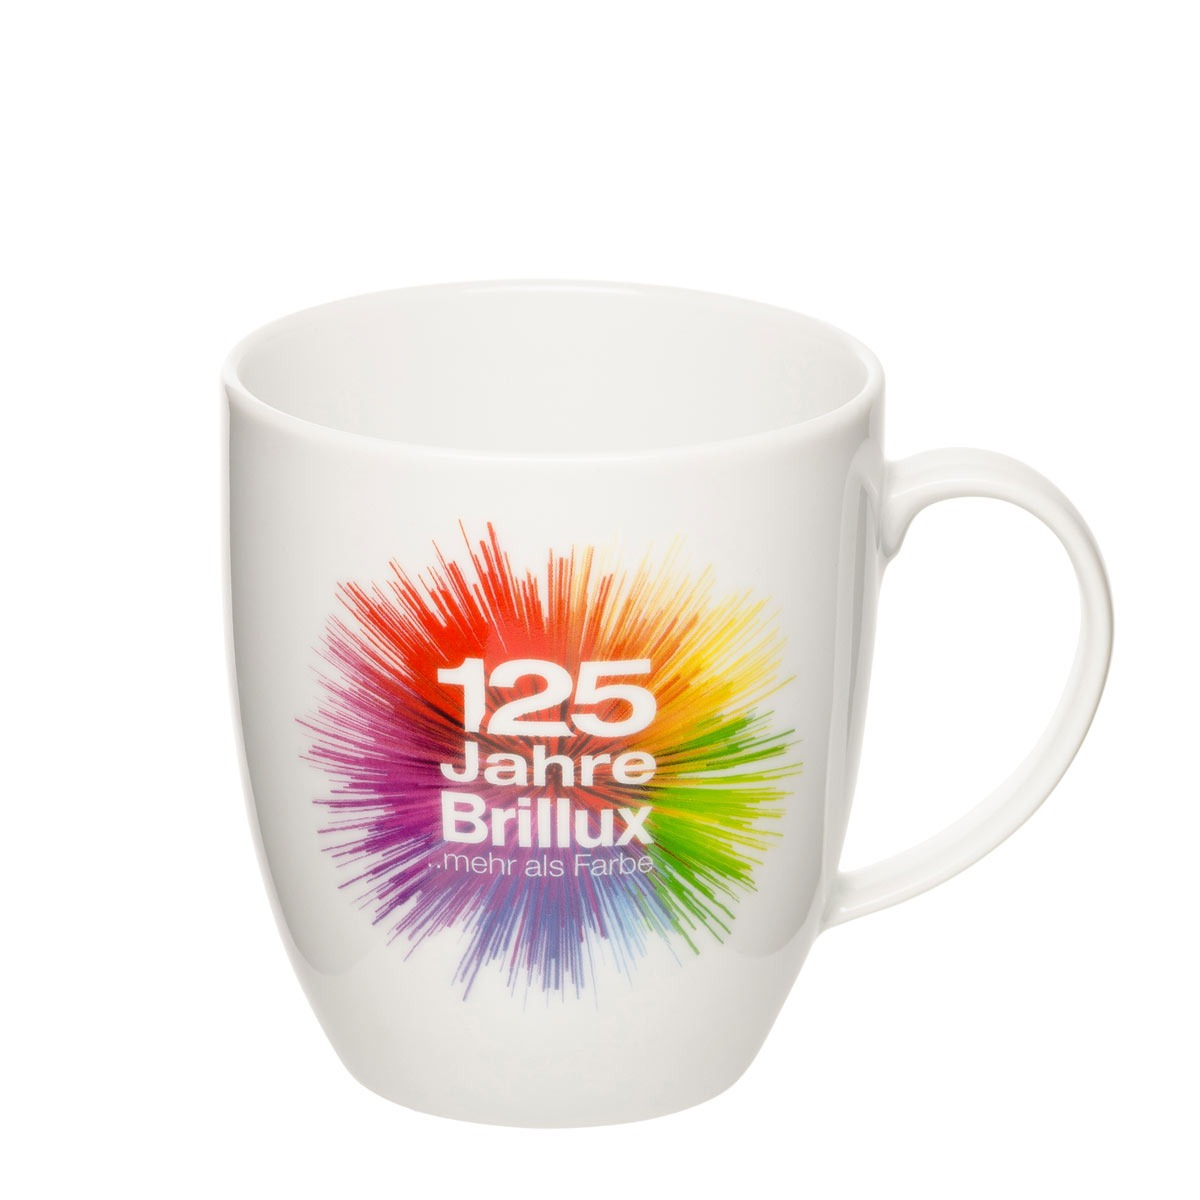 Print with high-level printing cups - a firework of colors